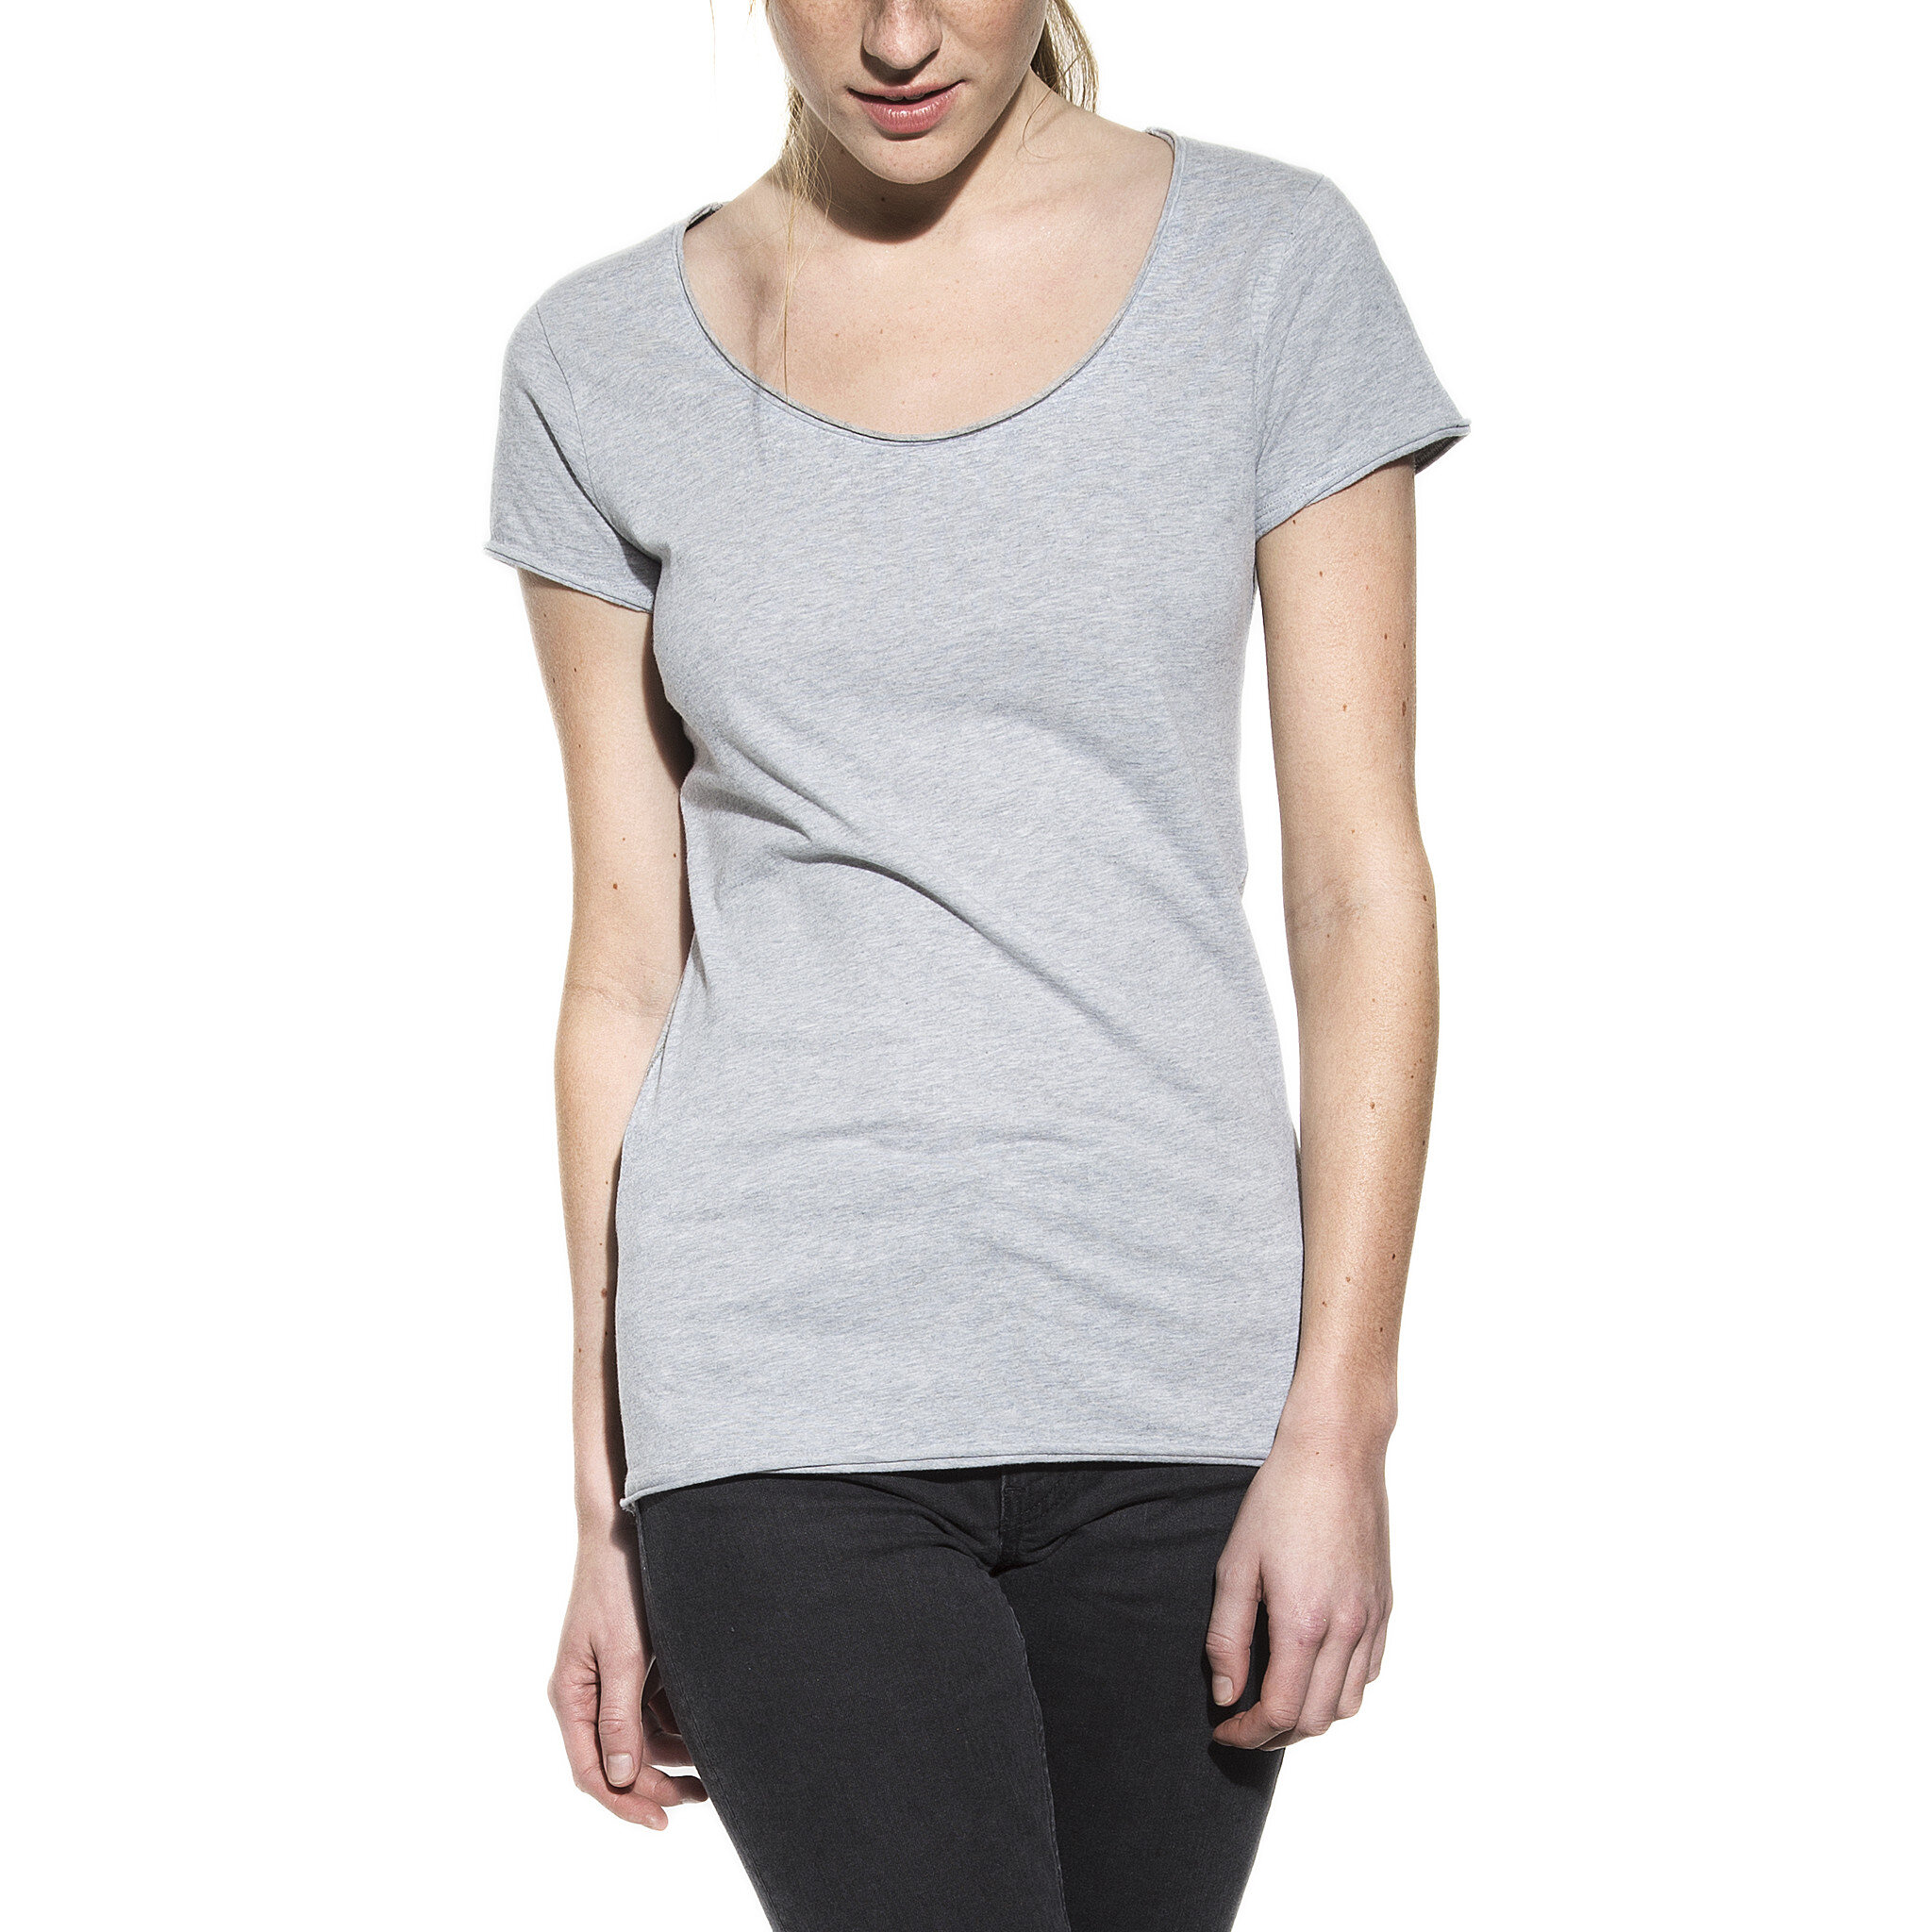 603103_Woman_Crew-Neck_relaxed_grey-melange_1